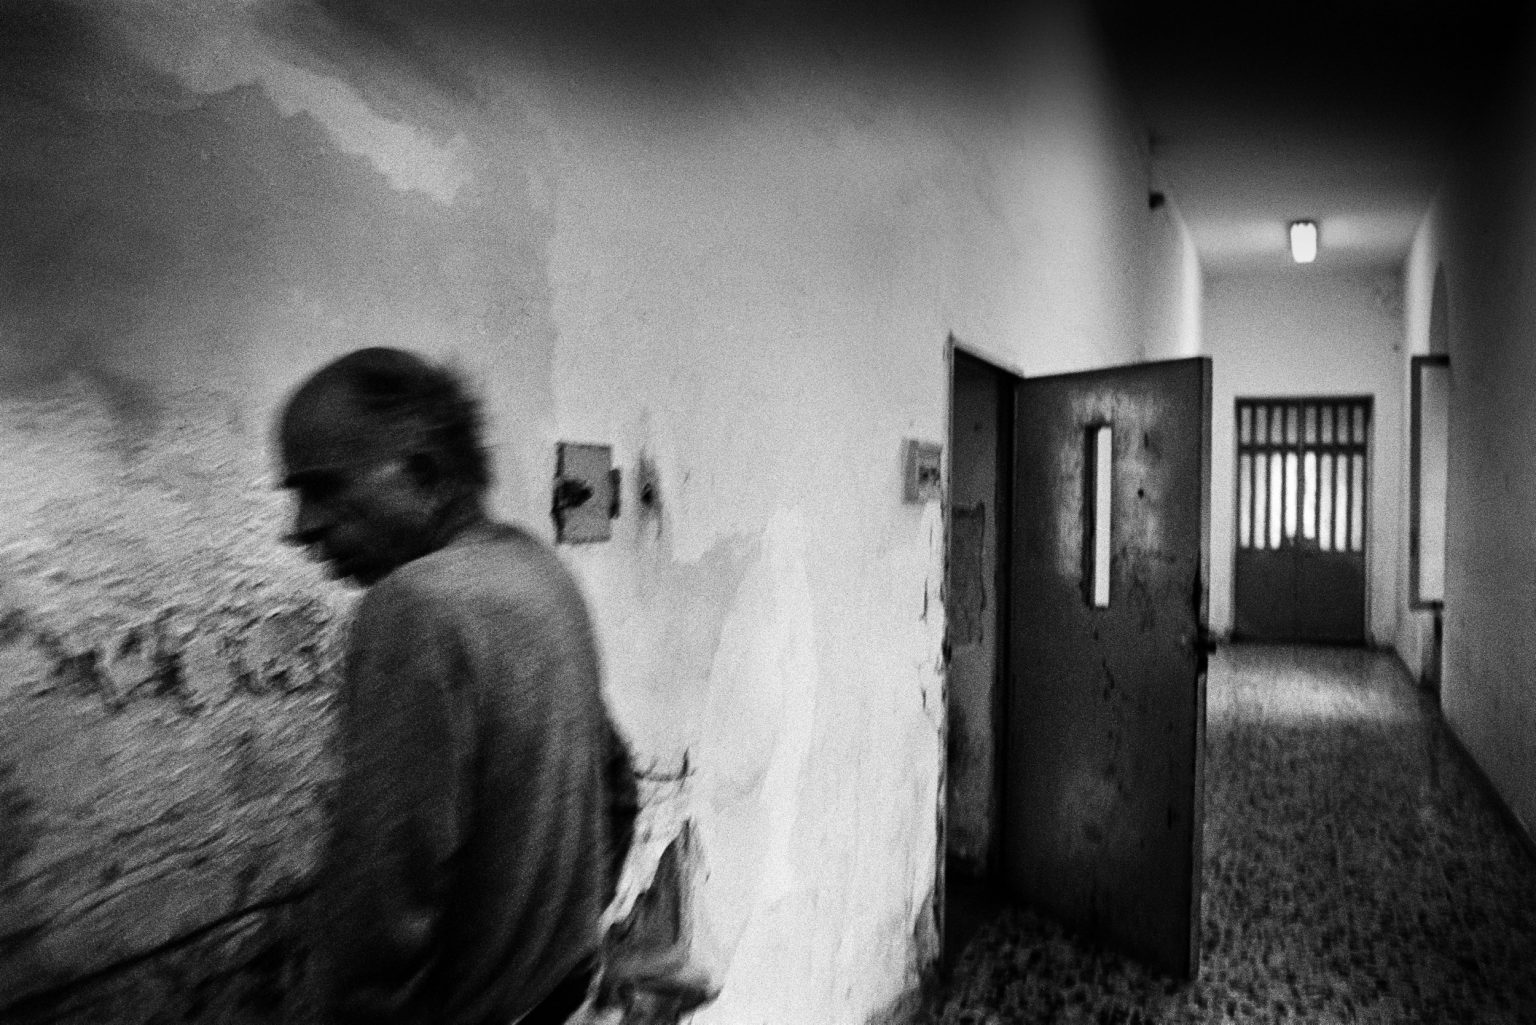 """Aversa ( Caserta ), January 2007 - The Judicial Psychiatric Hospital """"Filippo Saporito"""" - The 8th division: an inmate walking very close to the wall"""